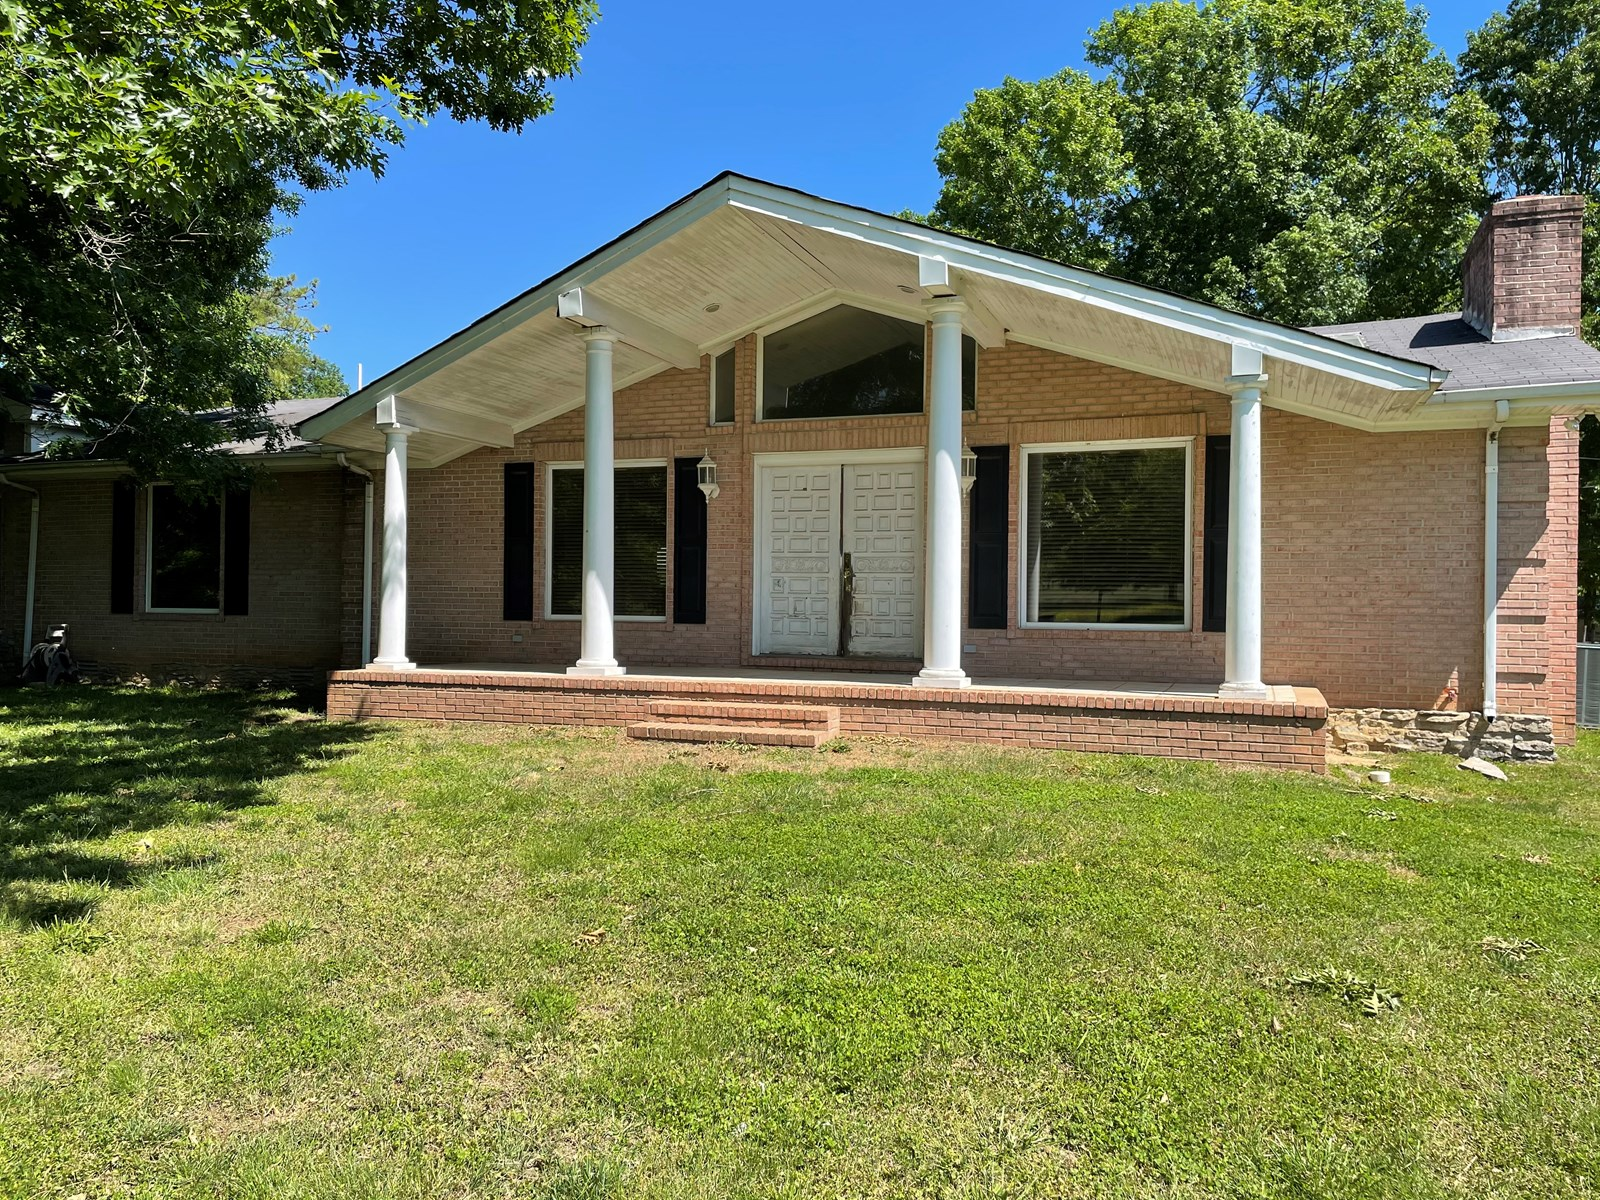 Country Home with Acreage for Sale in Lewisburg, Tennessee